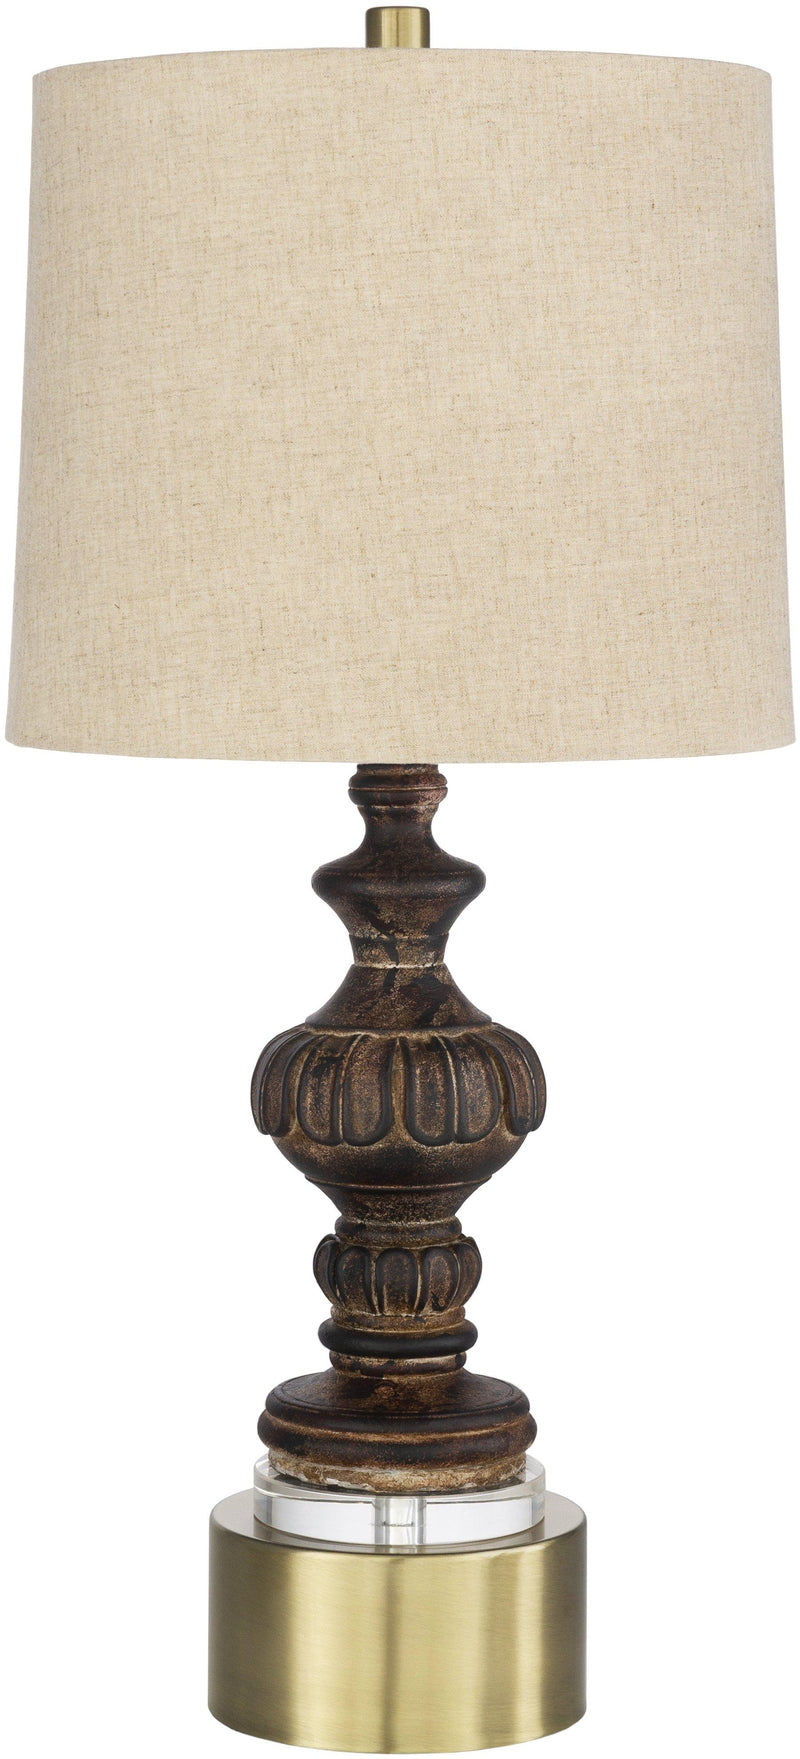 Steinberg Traditional Table Lamp